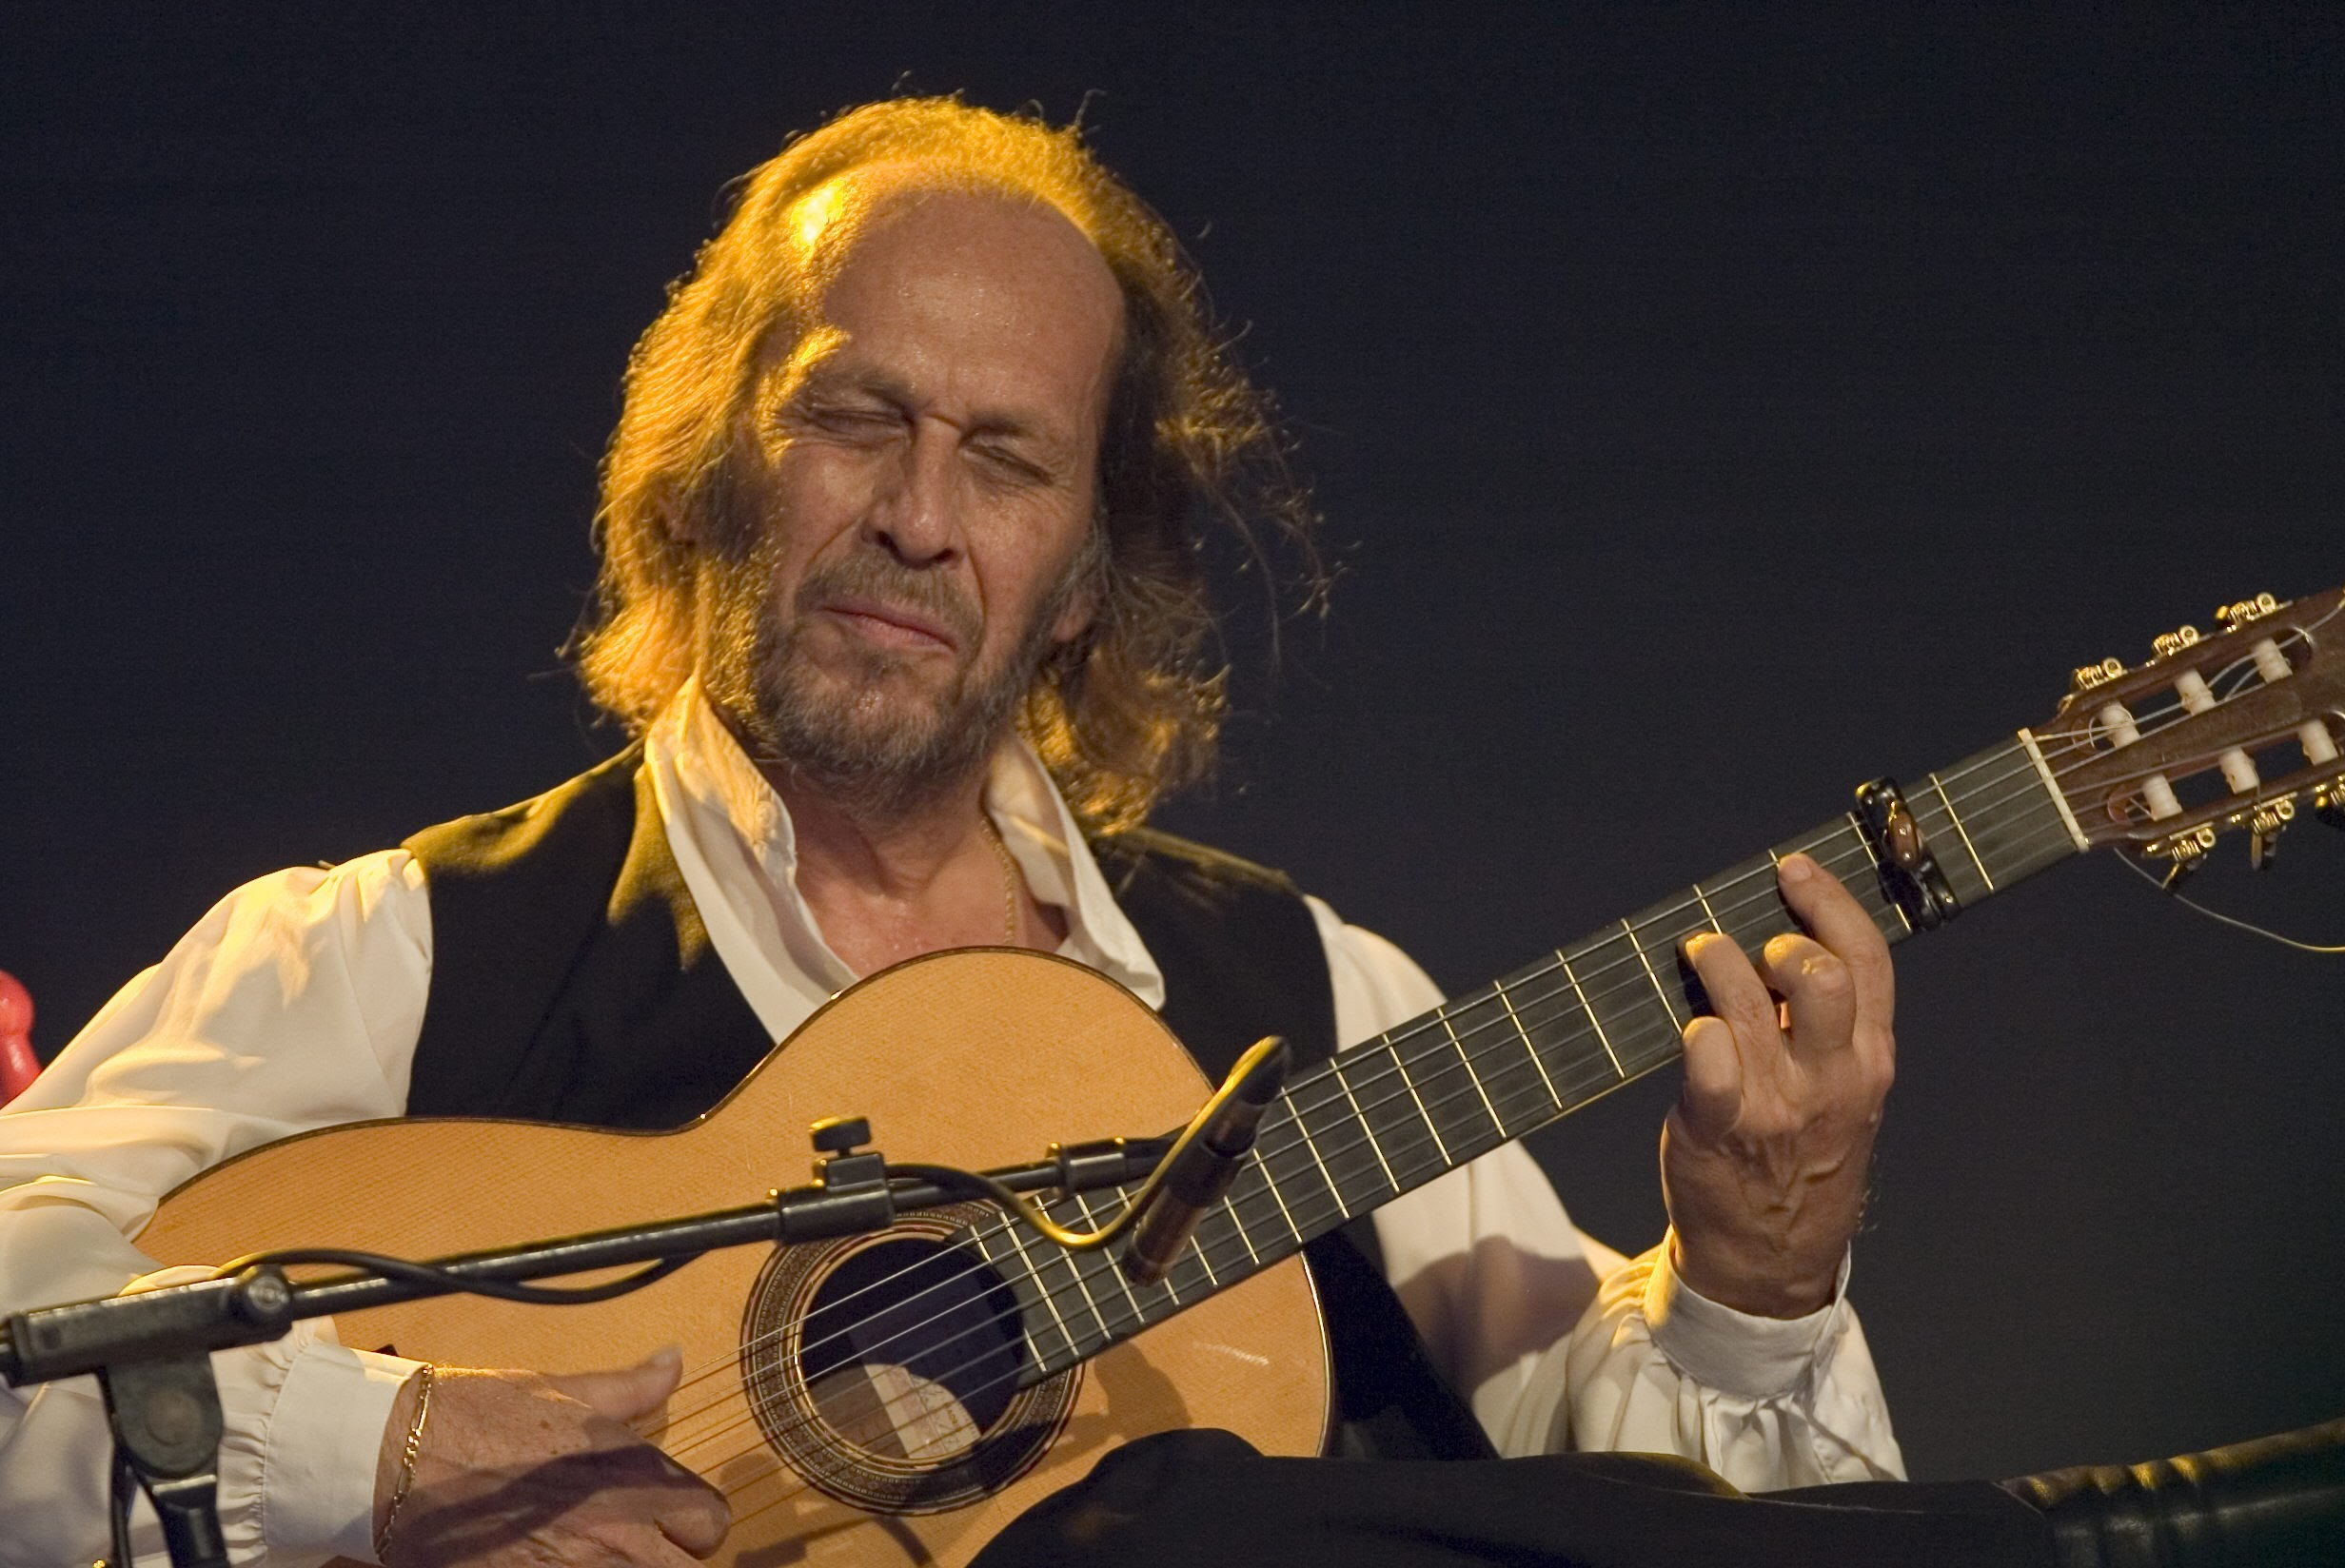 Caption: Paco De Lucia, Credit: Paco De Lucia